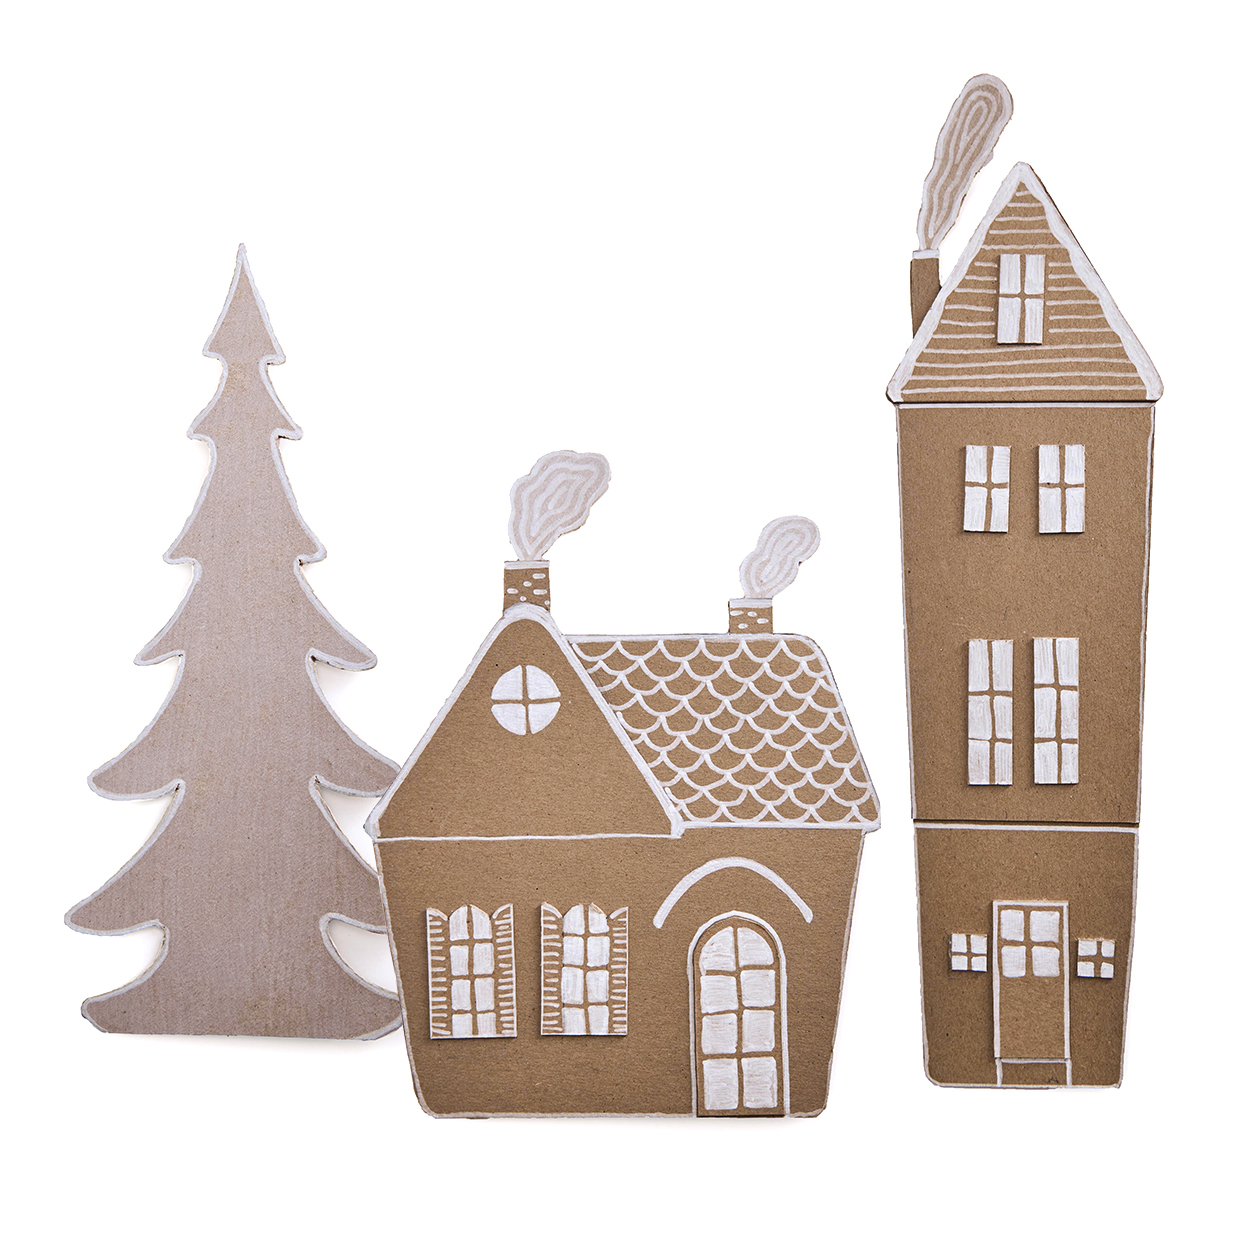 cut-out cardboard village houses on white